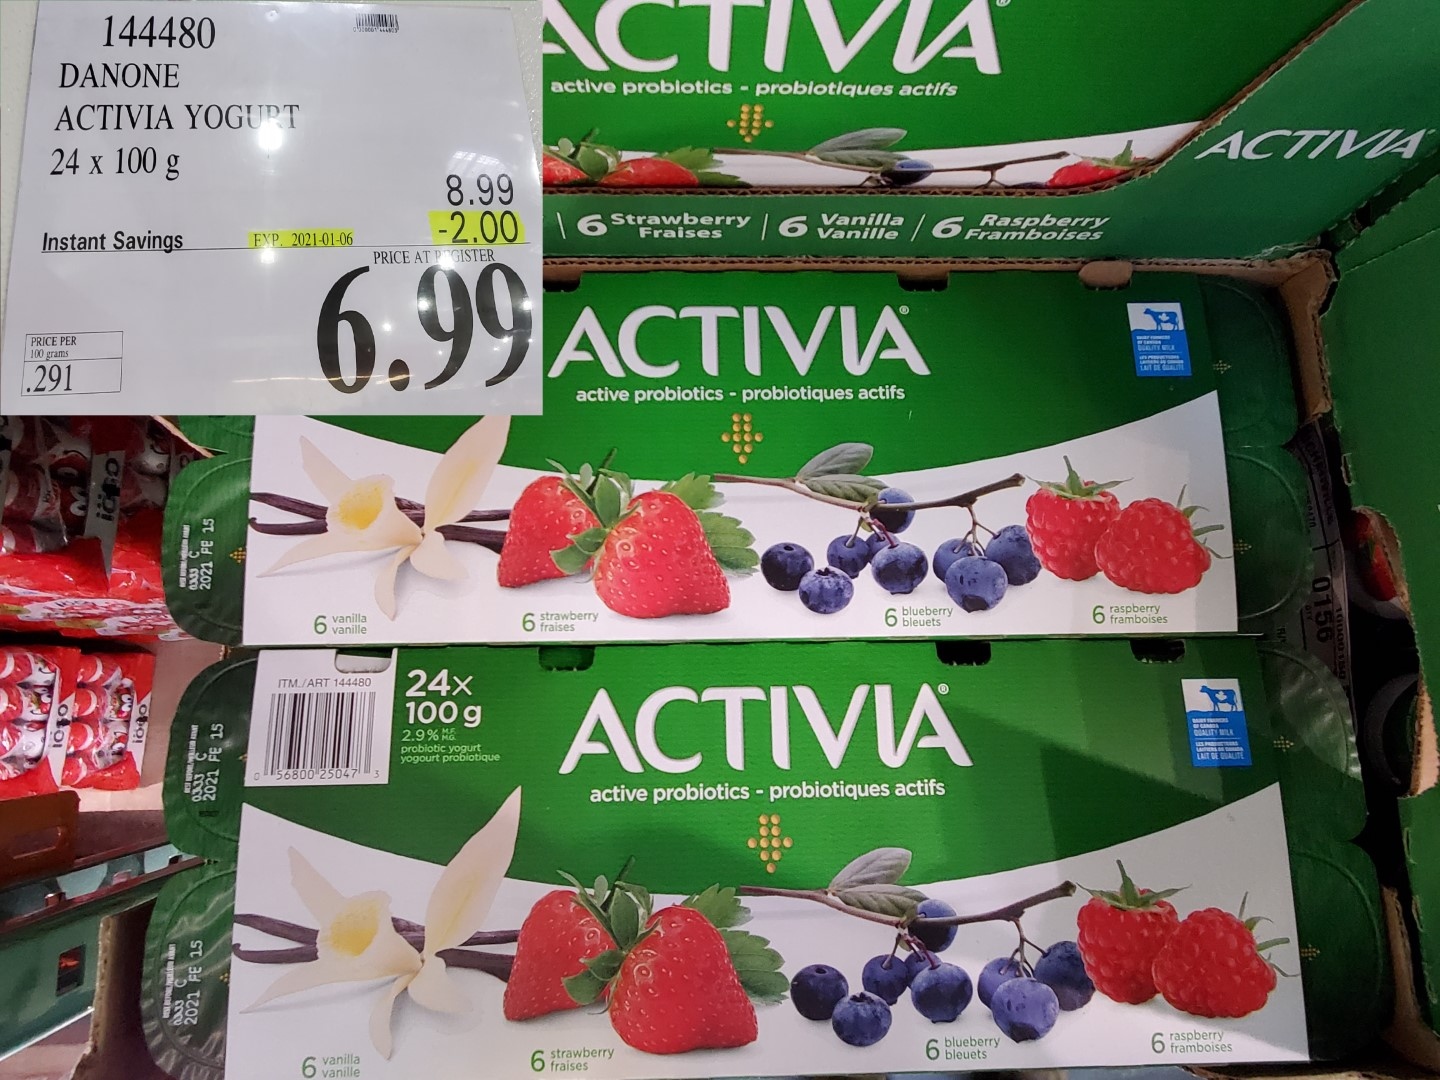 Costco Sale activia yogurt